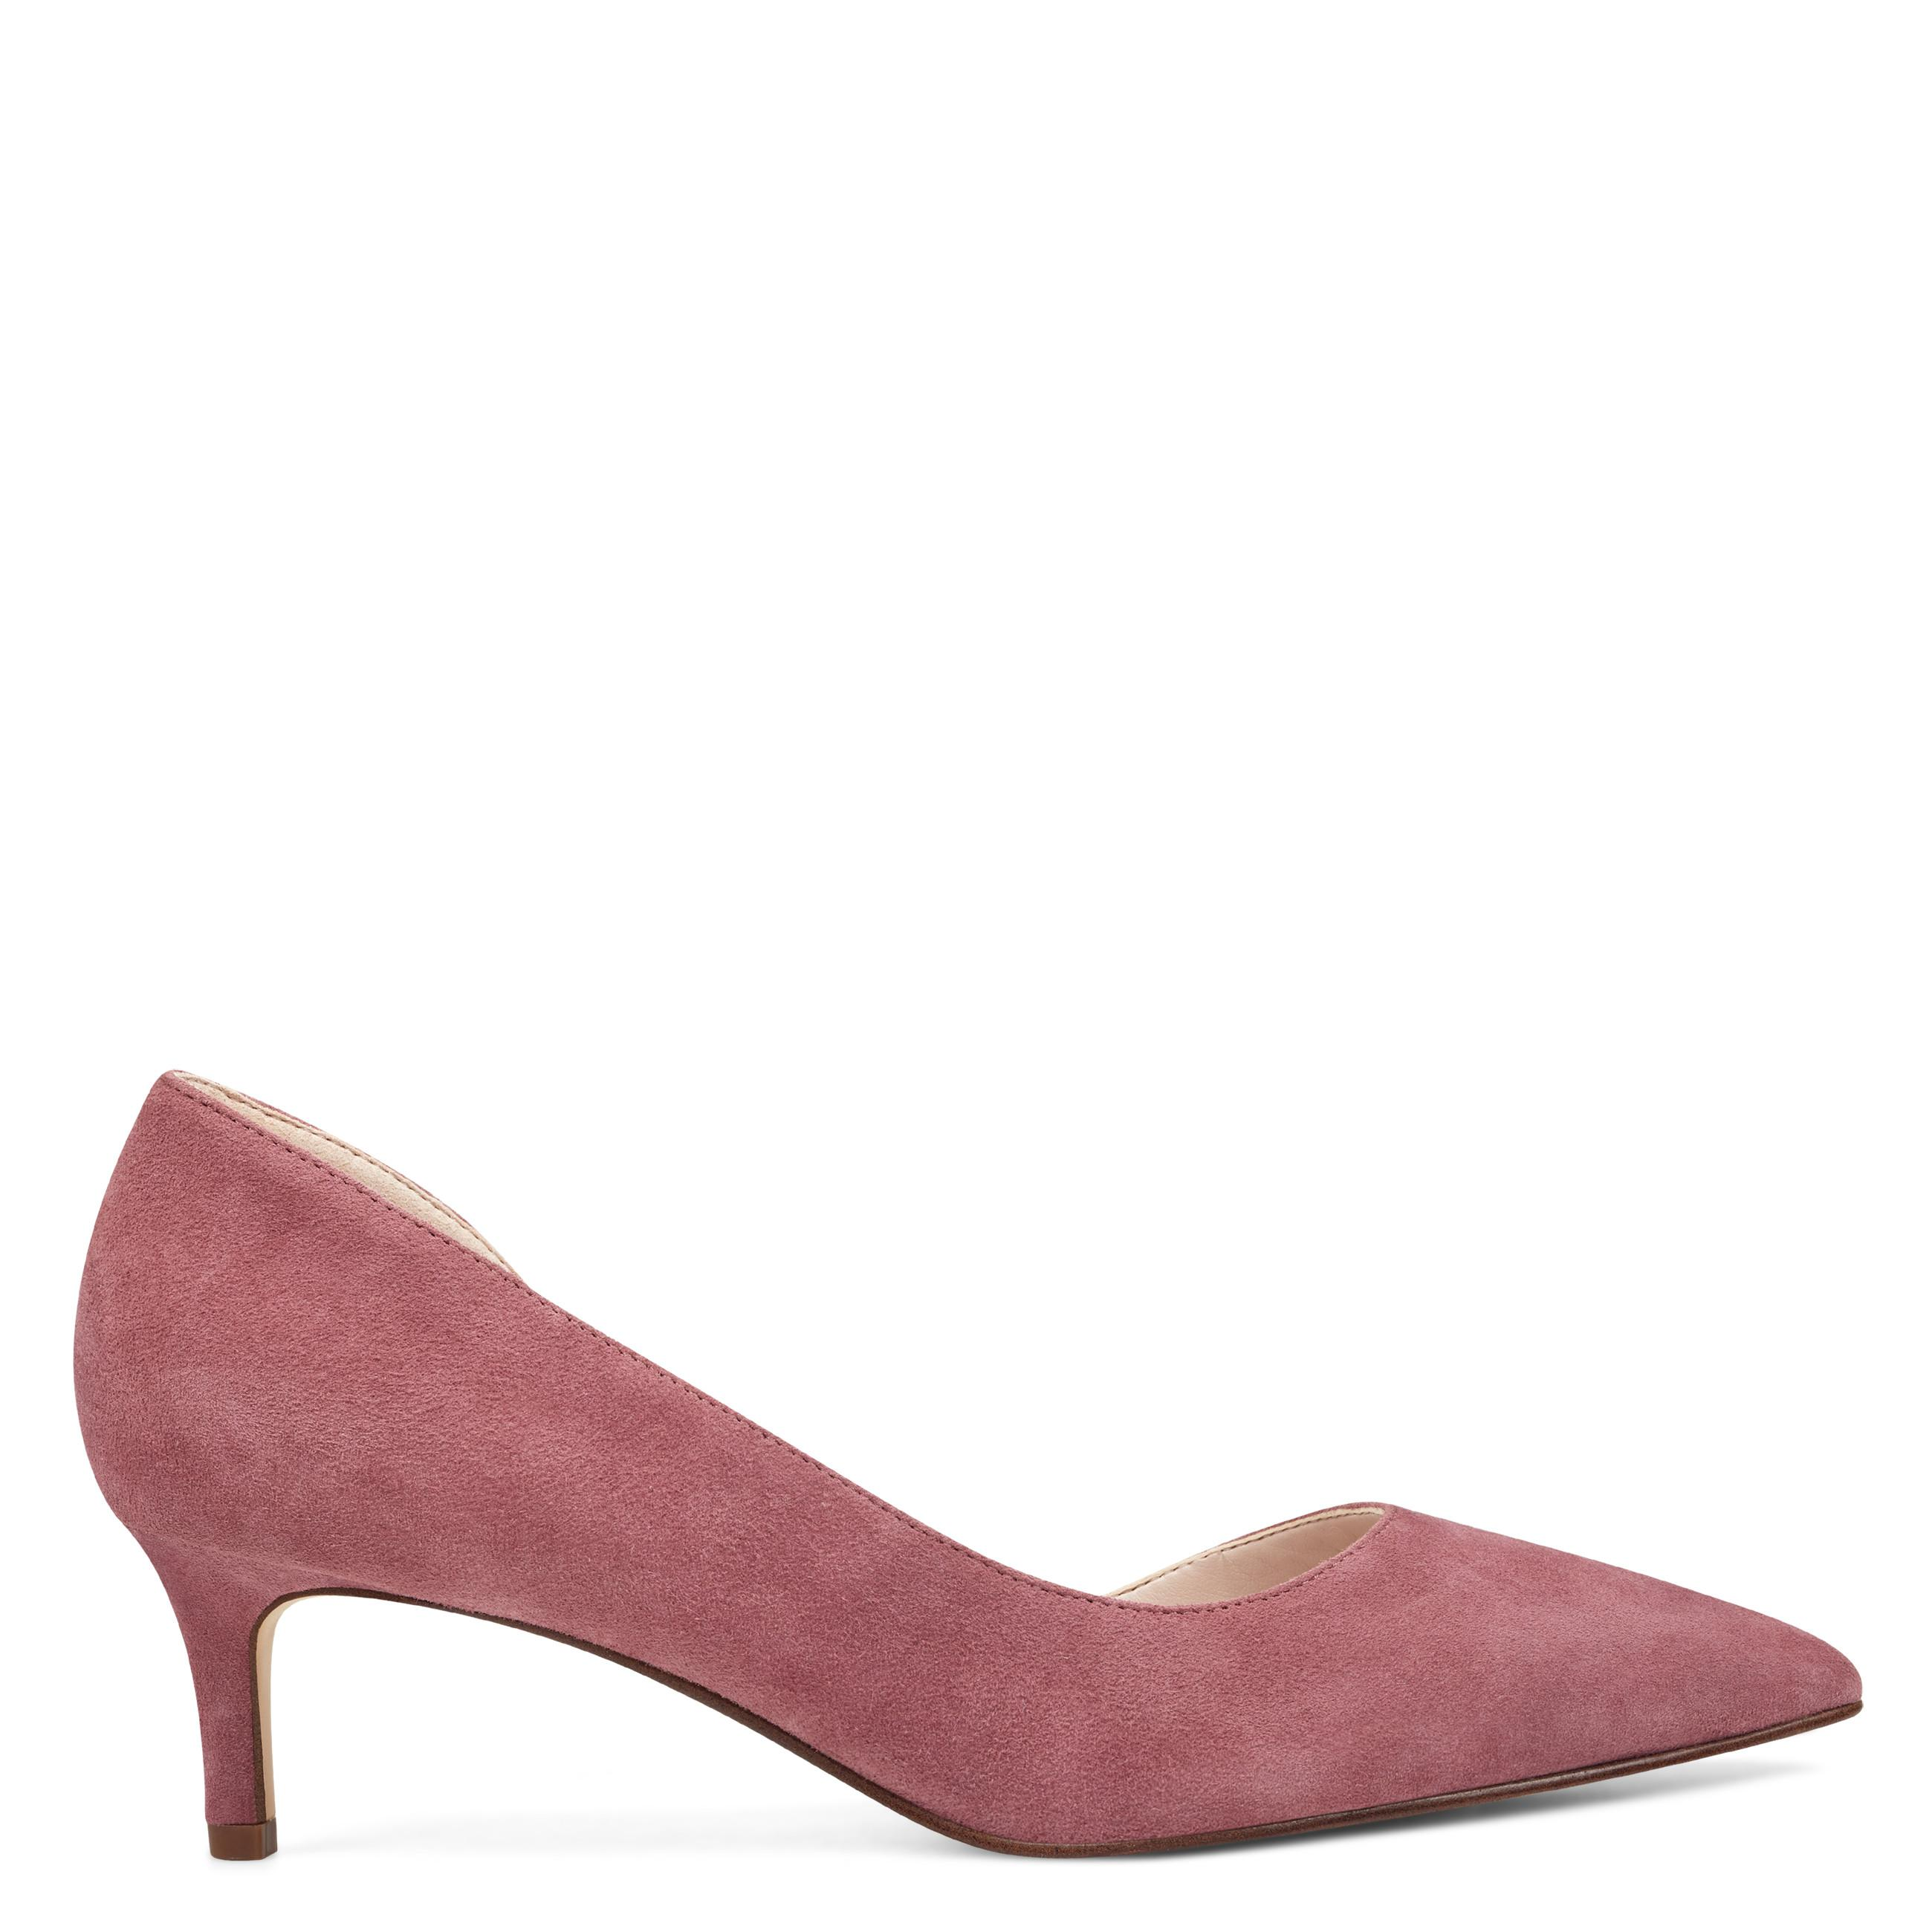 95190ed2236 Lyst - Nine West Fiacre D orsay Pumps in Pink - Save 34%